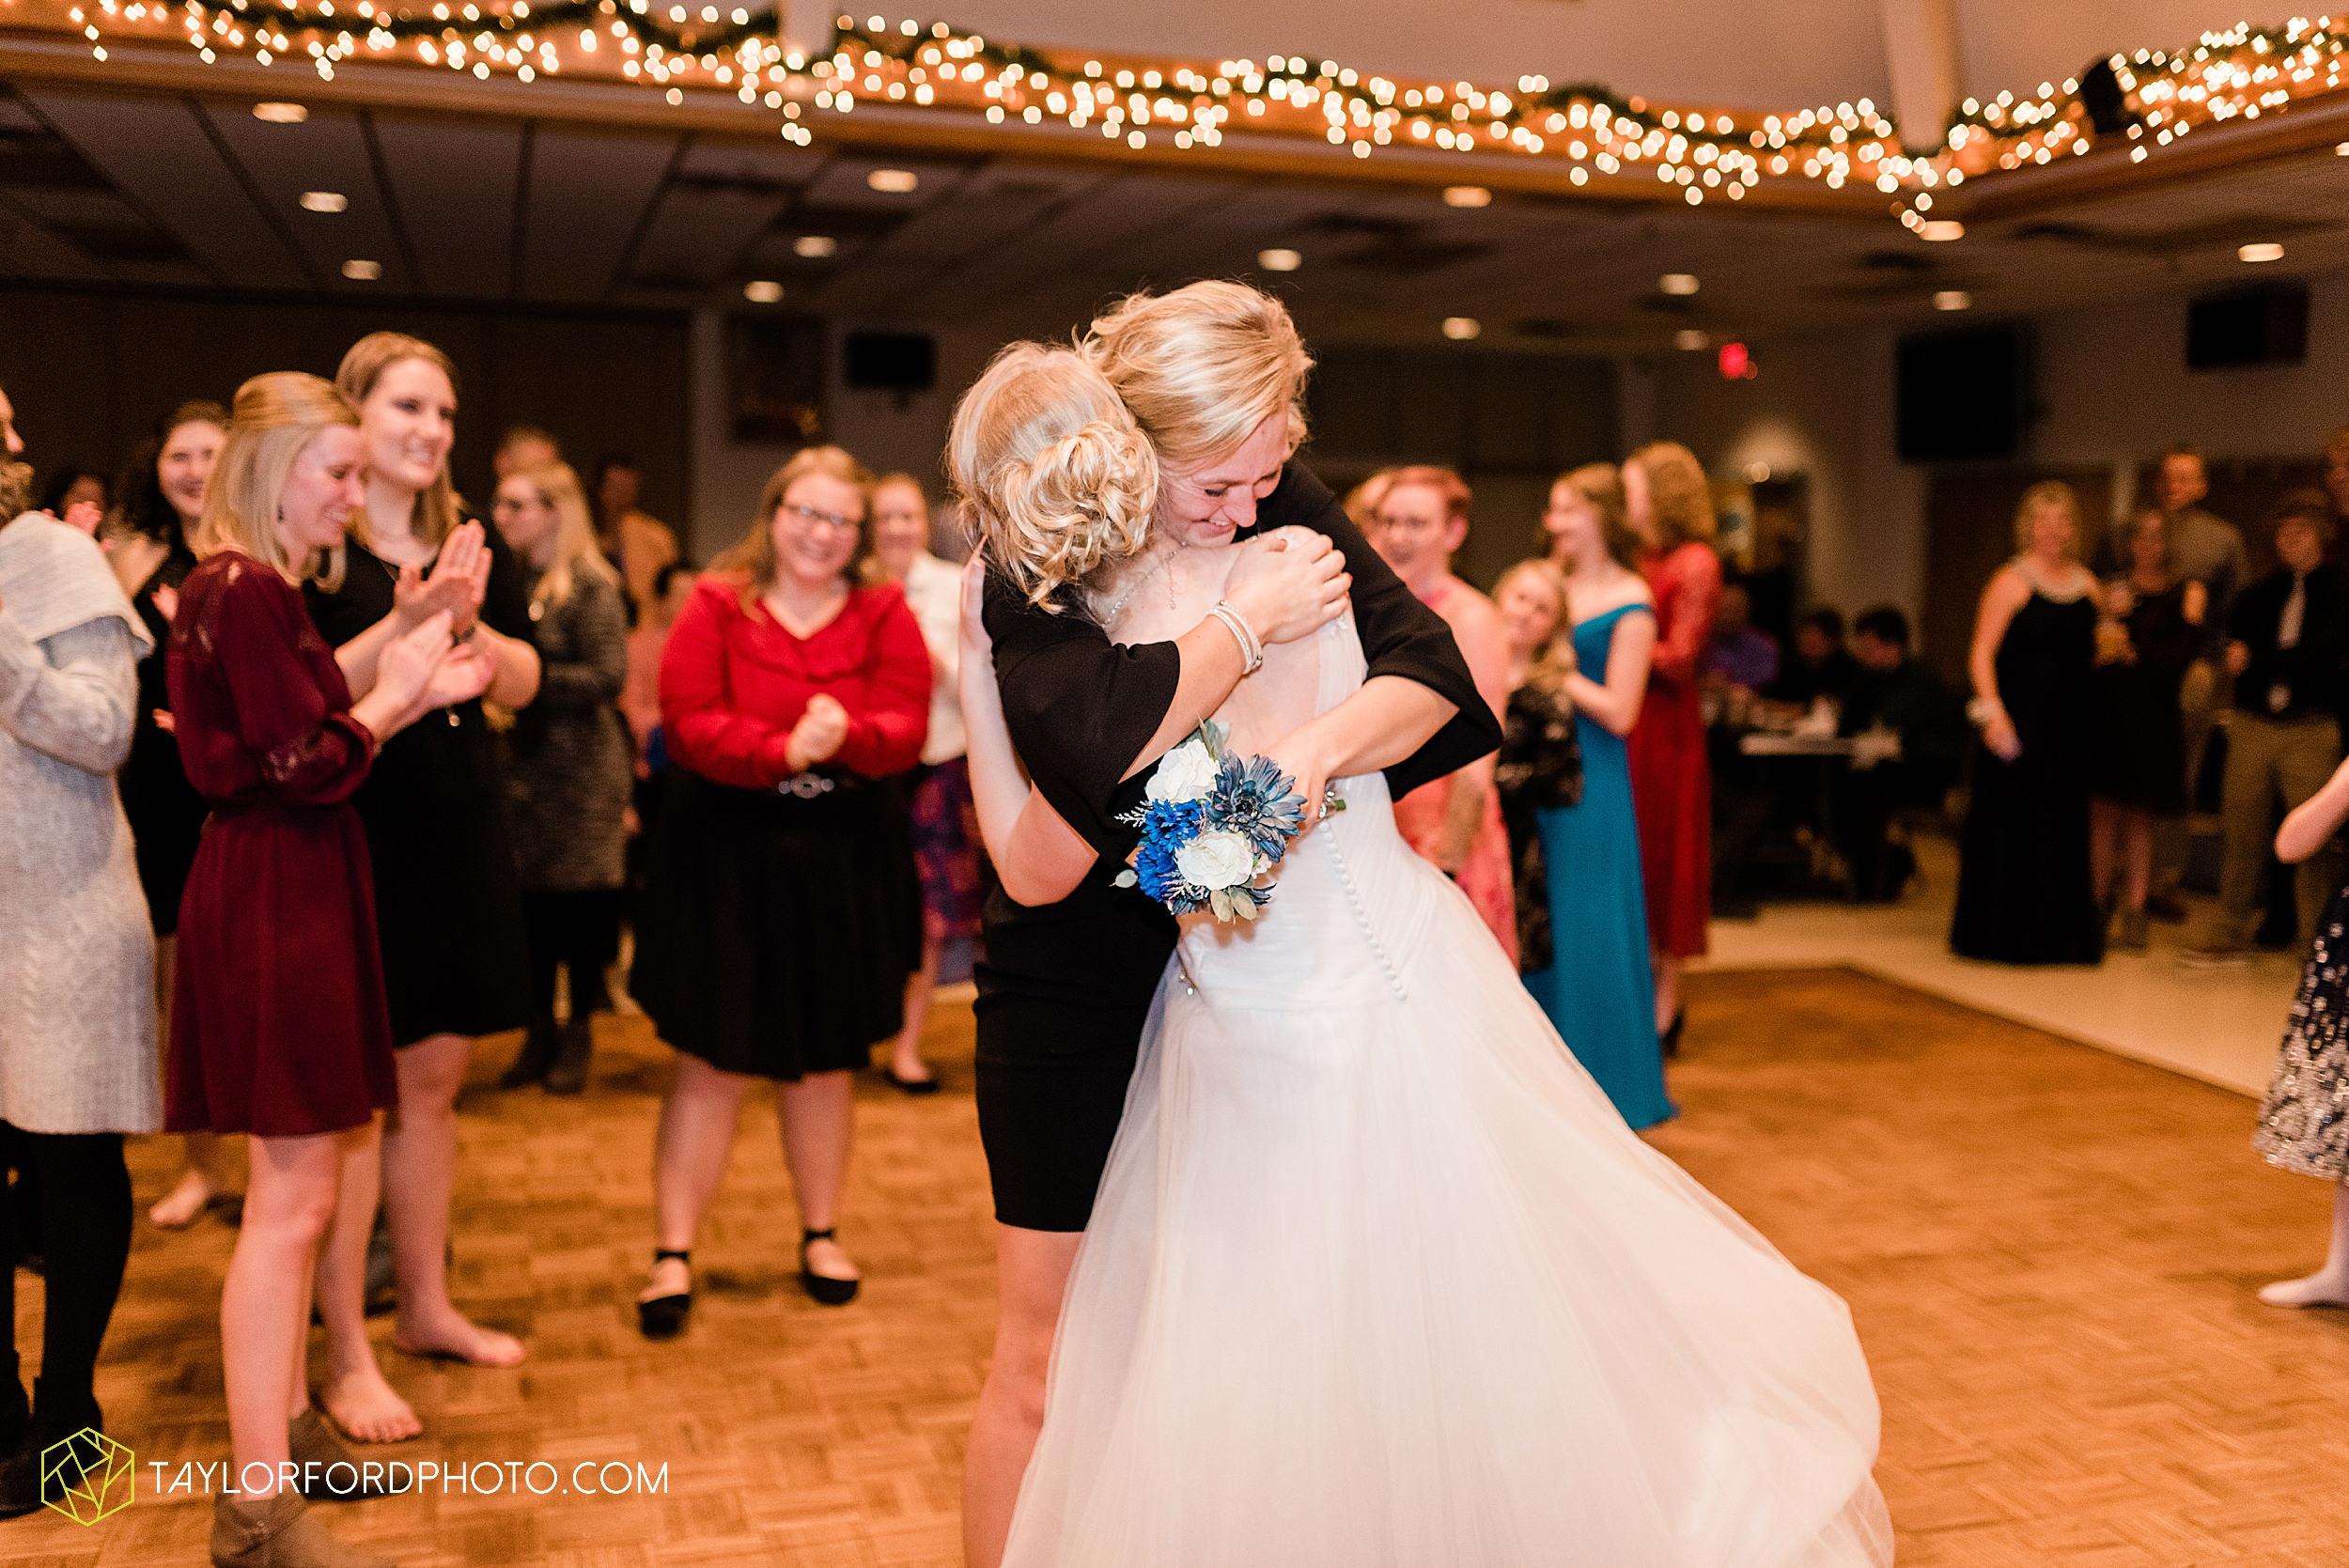 pleasant-view-church-christmas-celina-fraternal-order-of-eagles-reception-wedding-wren-willshire-van-wert-ohio-photography-taylor-ford-hirschy-photographer_2215.jpg